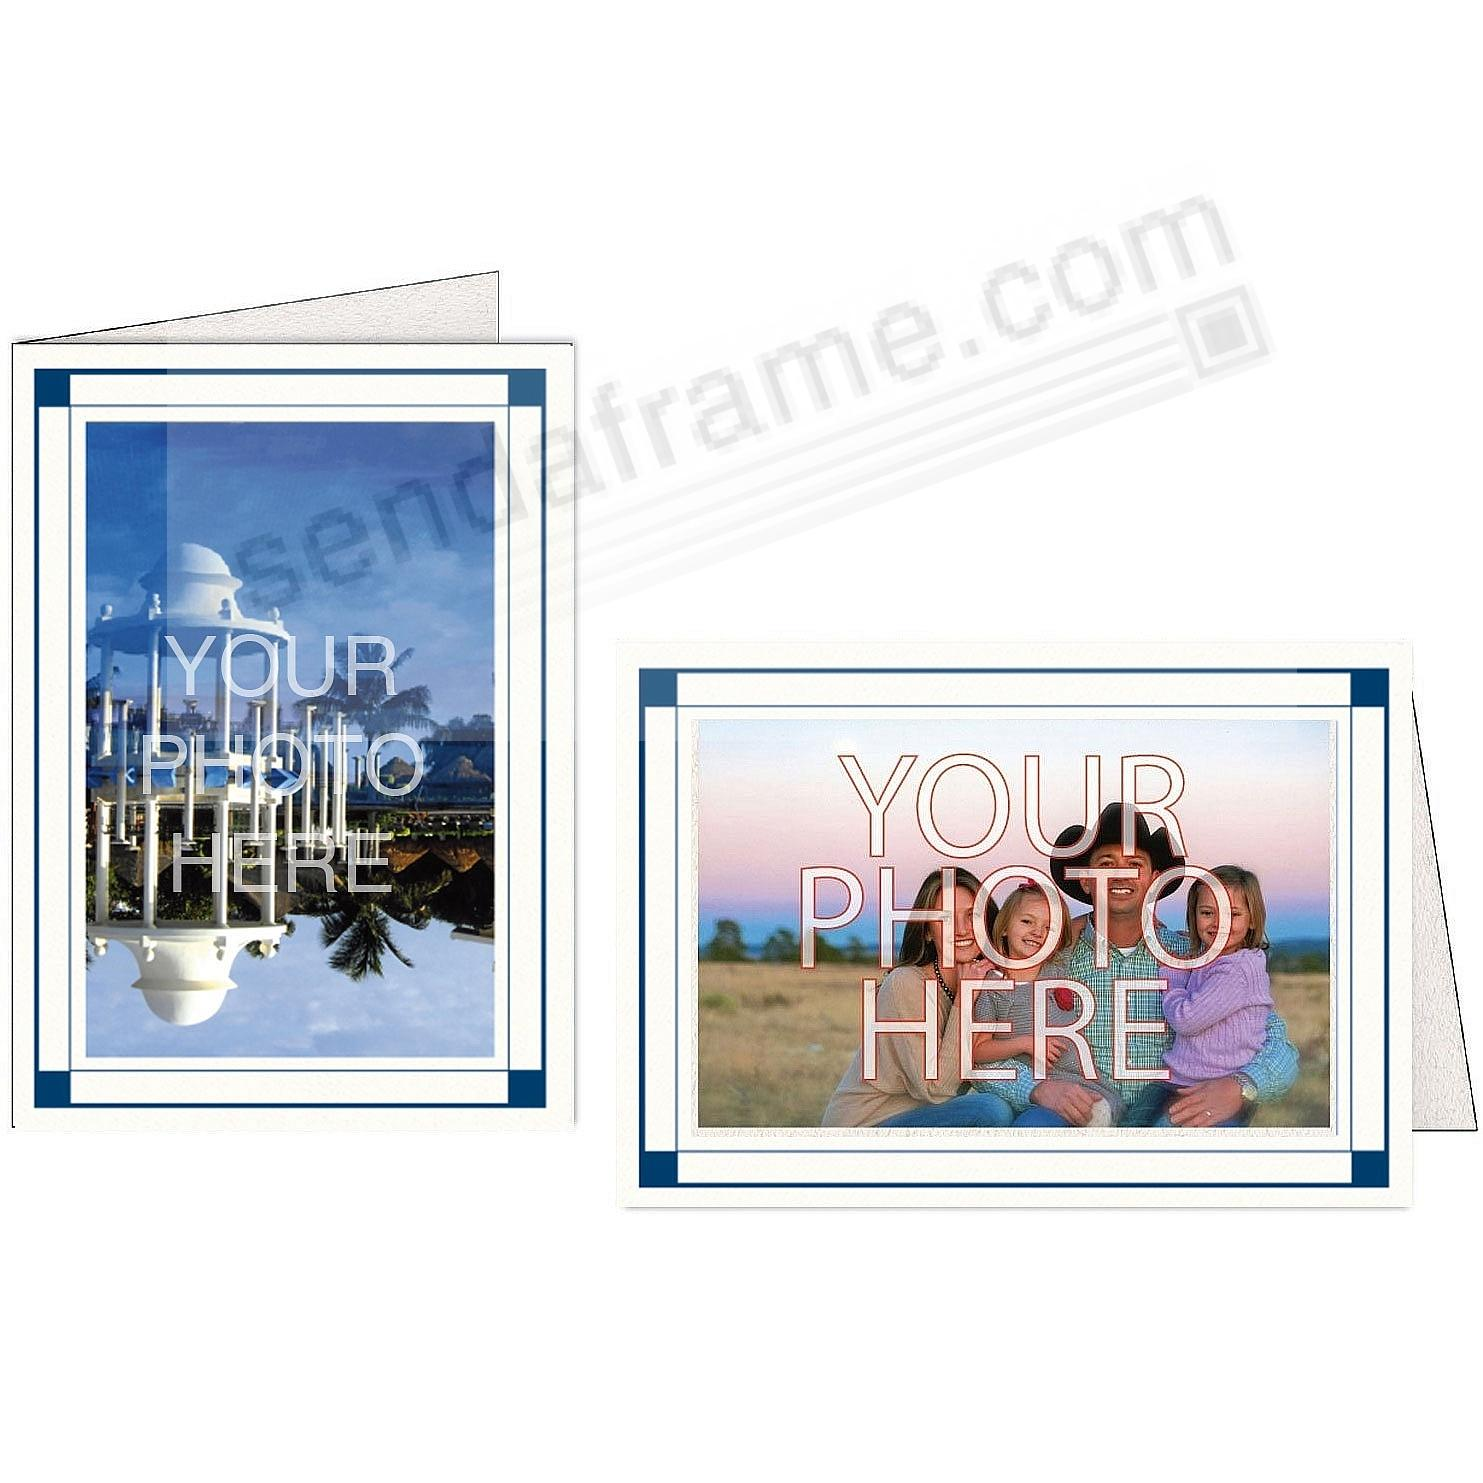 Bright-White Midnight-Blue Border Photo Insert Card (sold in 10s)